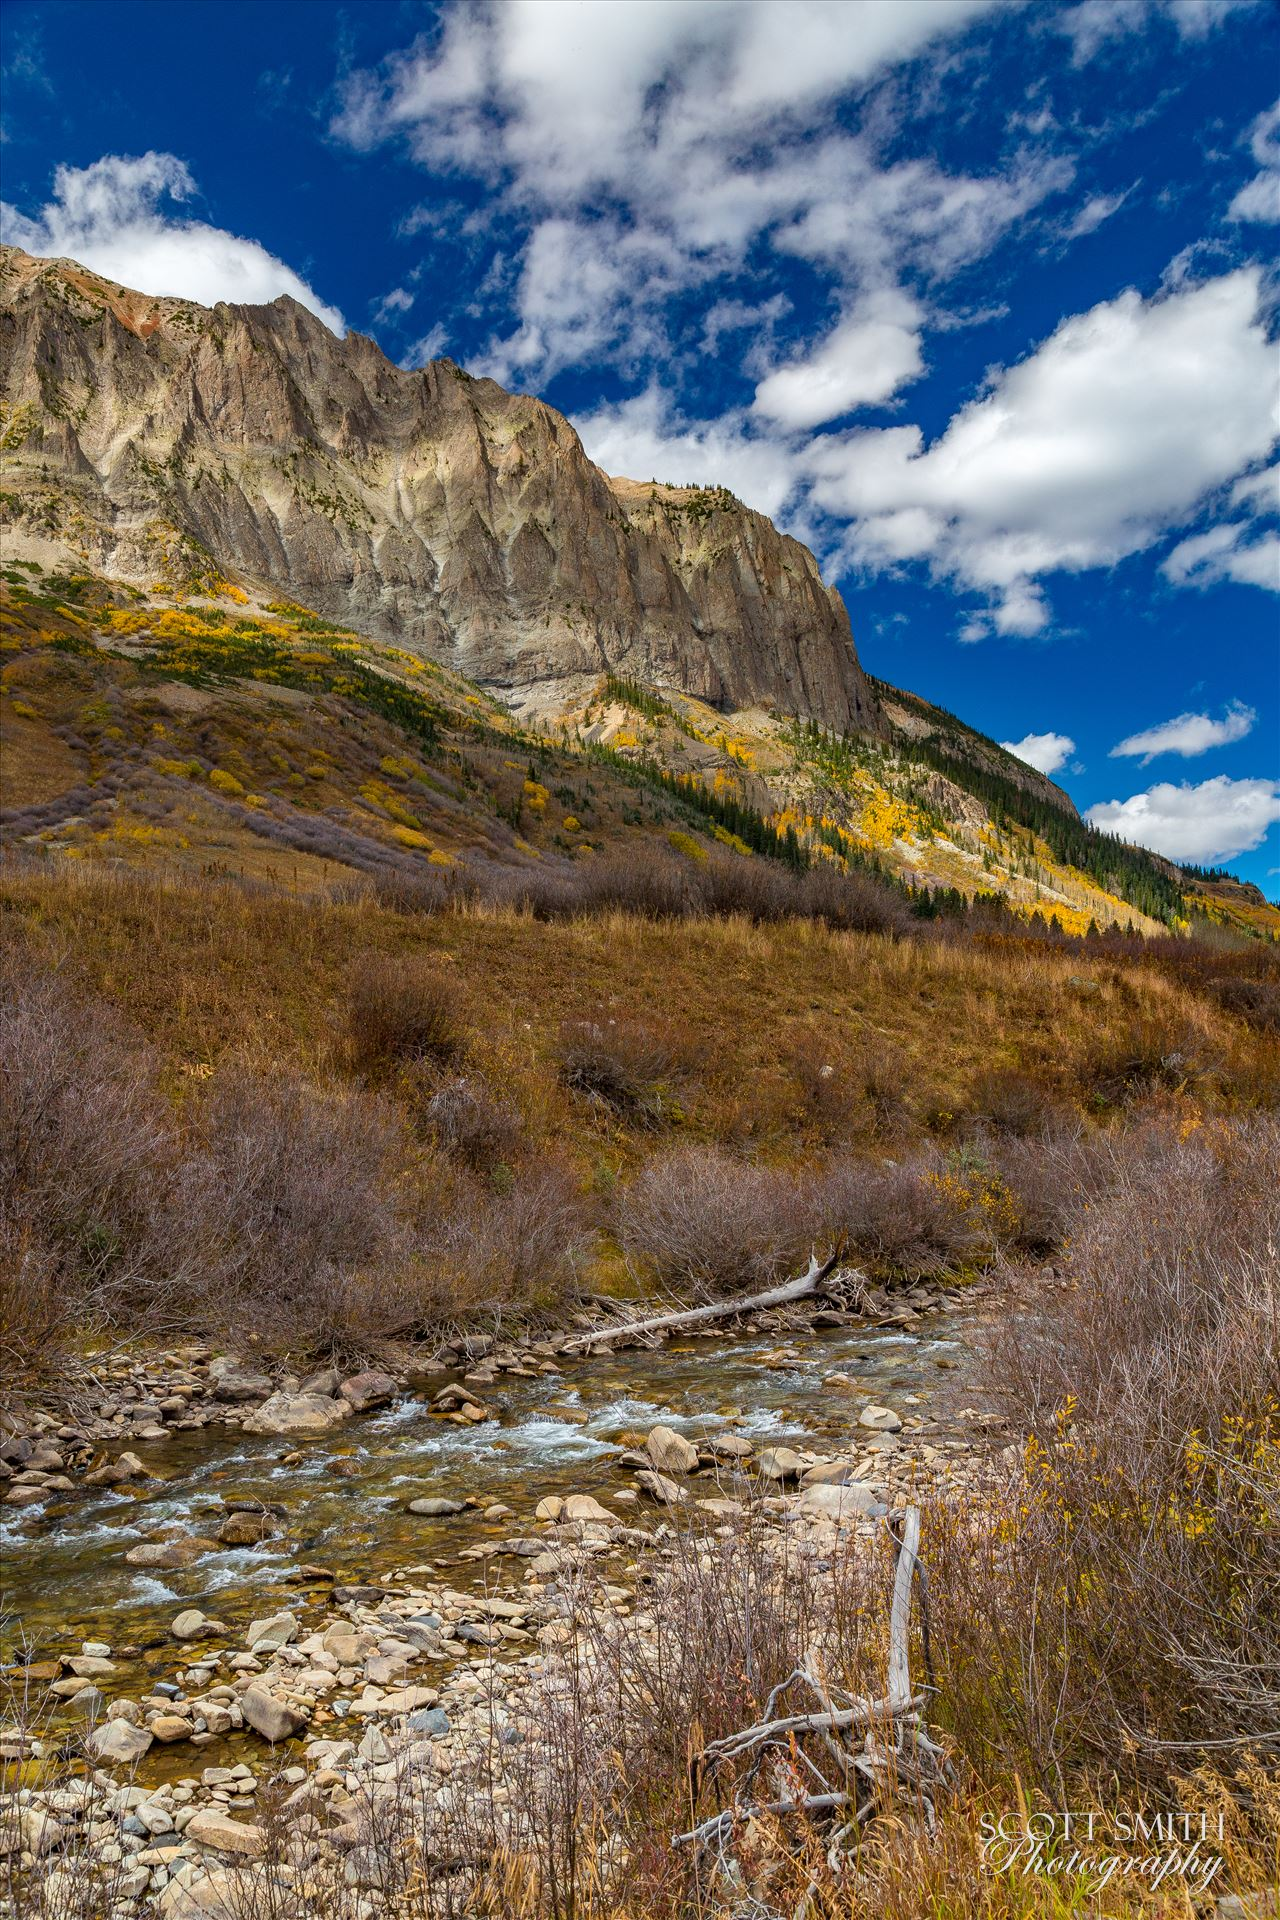 Gothic and East River - One of the small East River tributaries trickles past Gothic Mountain near Crested Butte, Colorado. by D Scott Smith